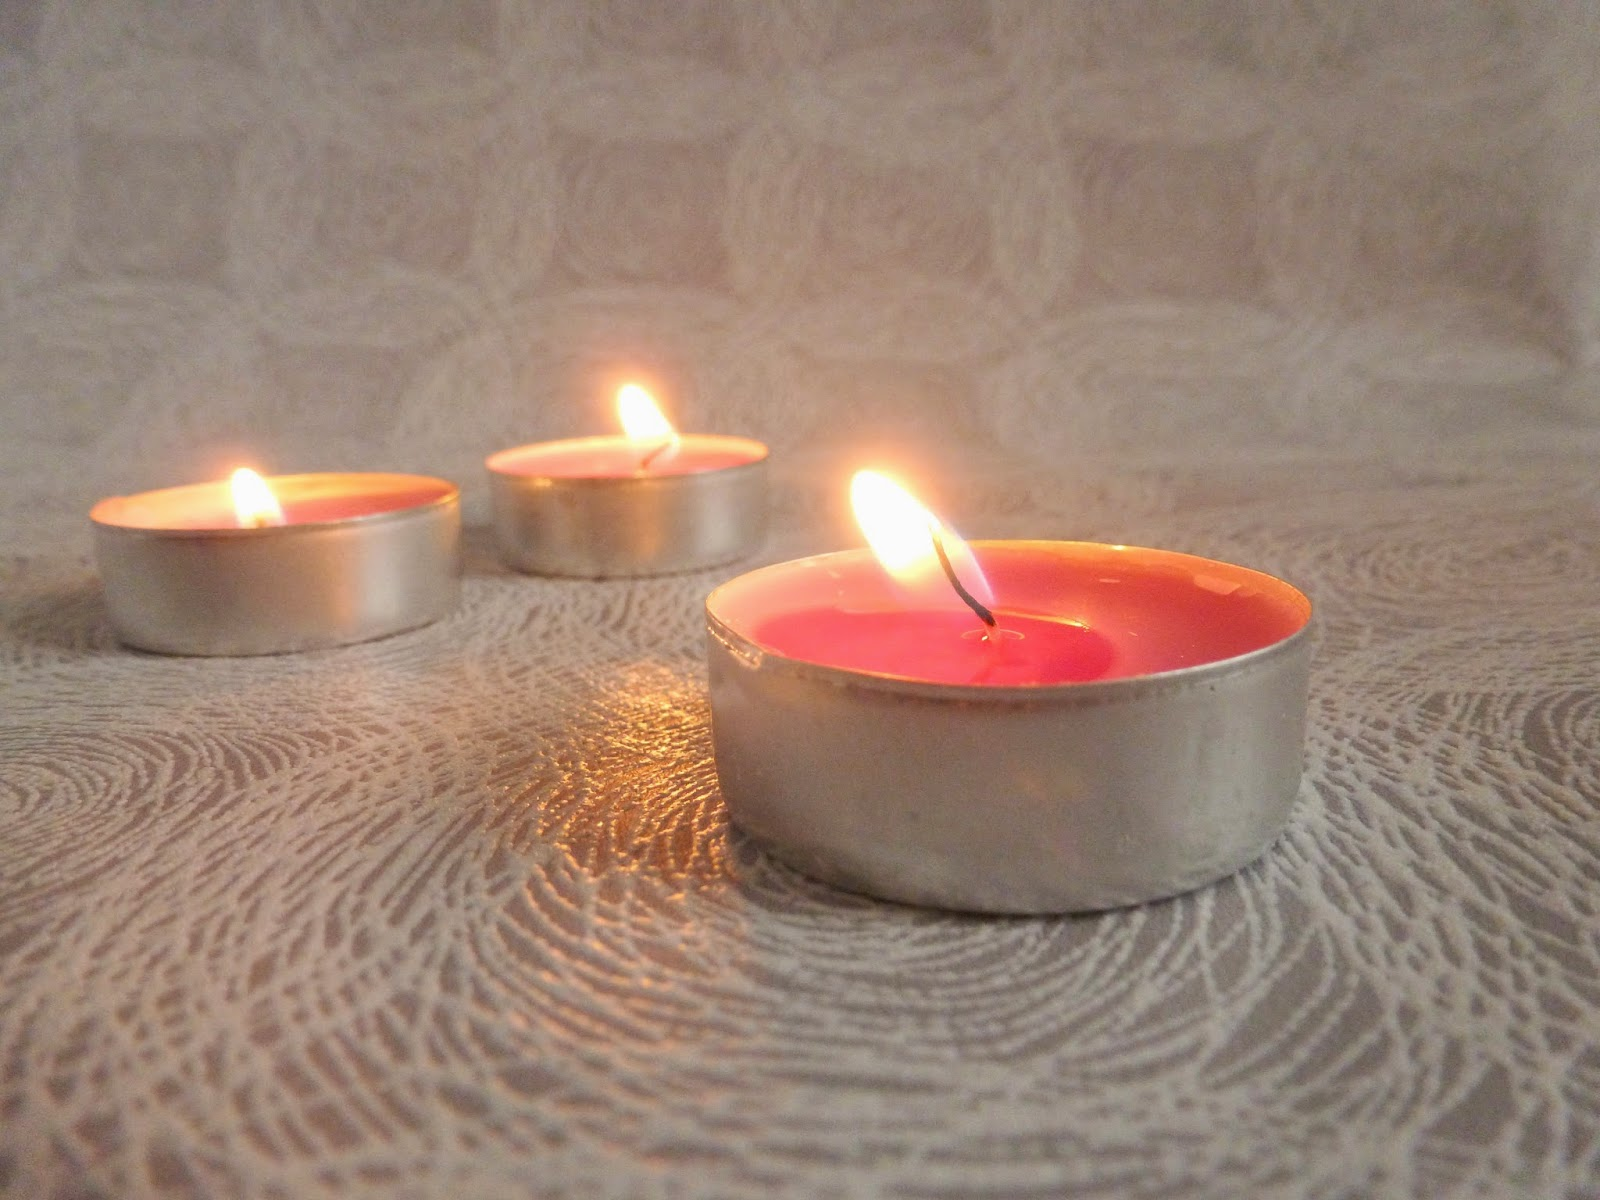 Lit tea light candles